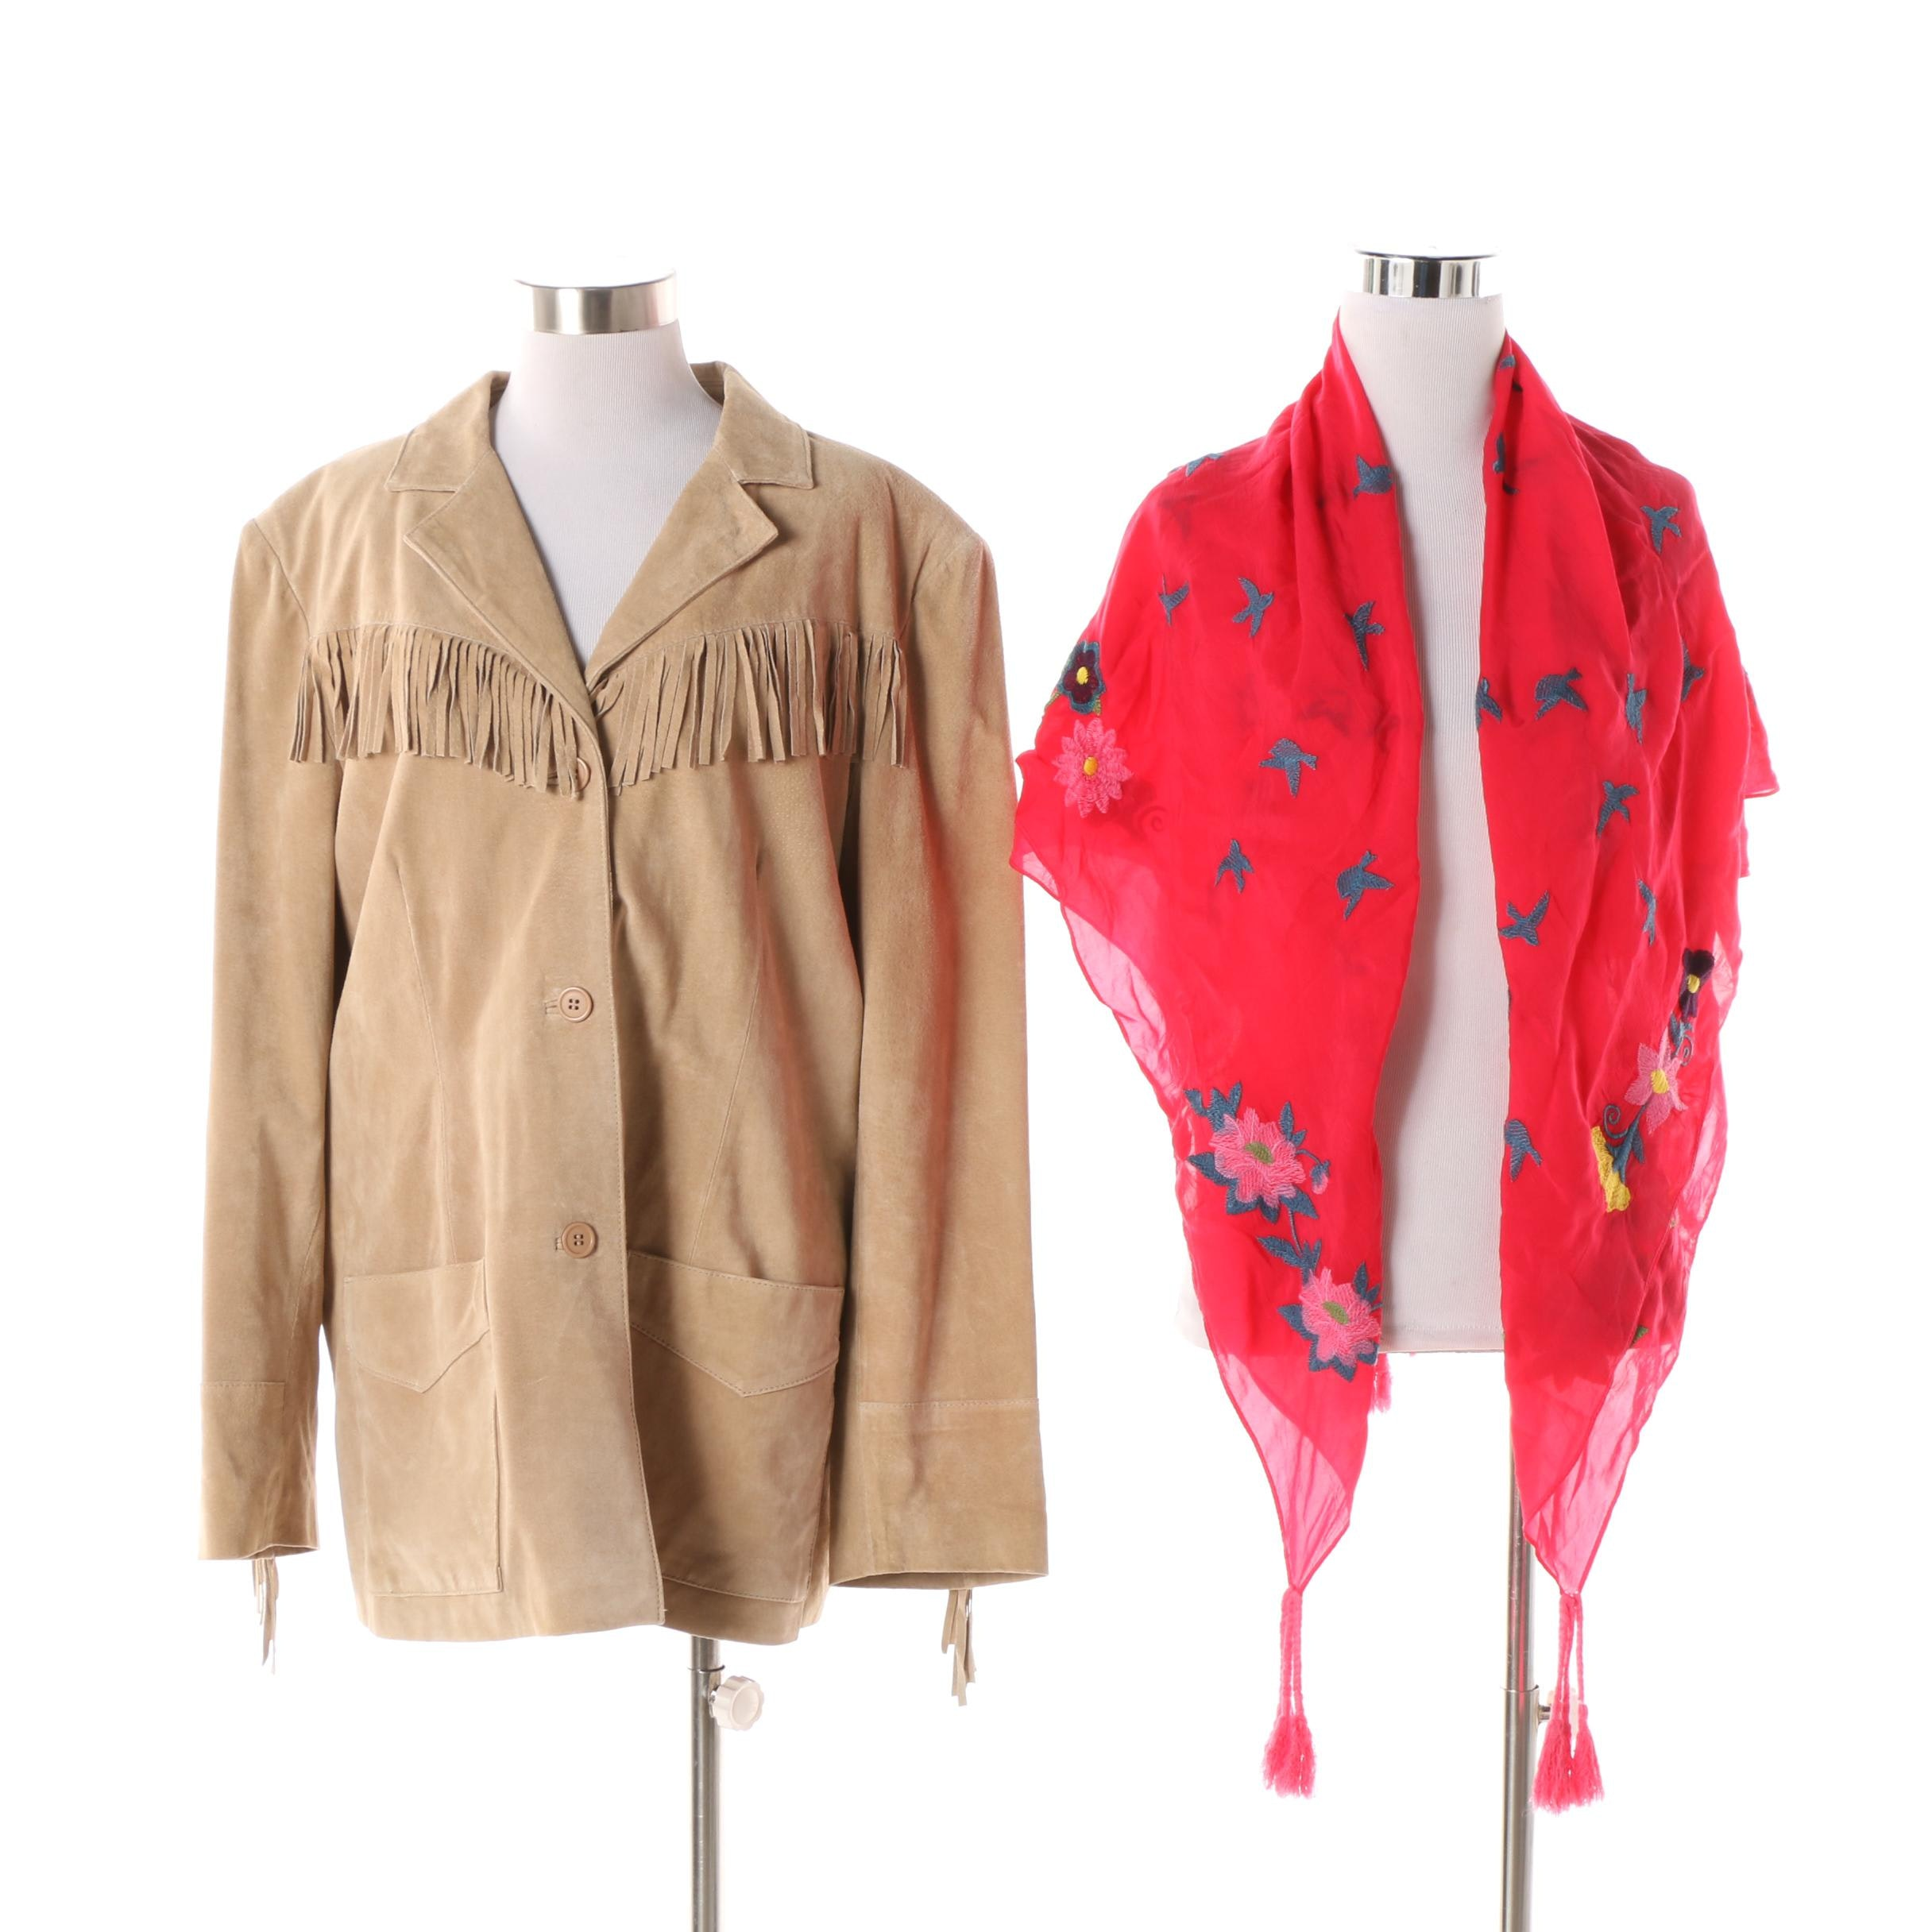 Women's Atelier by B. Thomas Suede Jacket with Embroidered Scarf